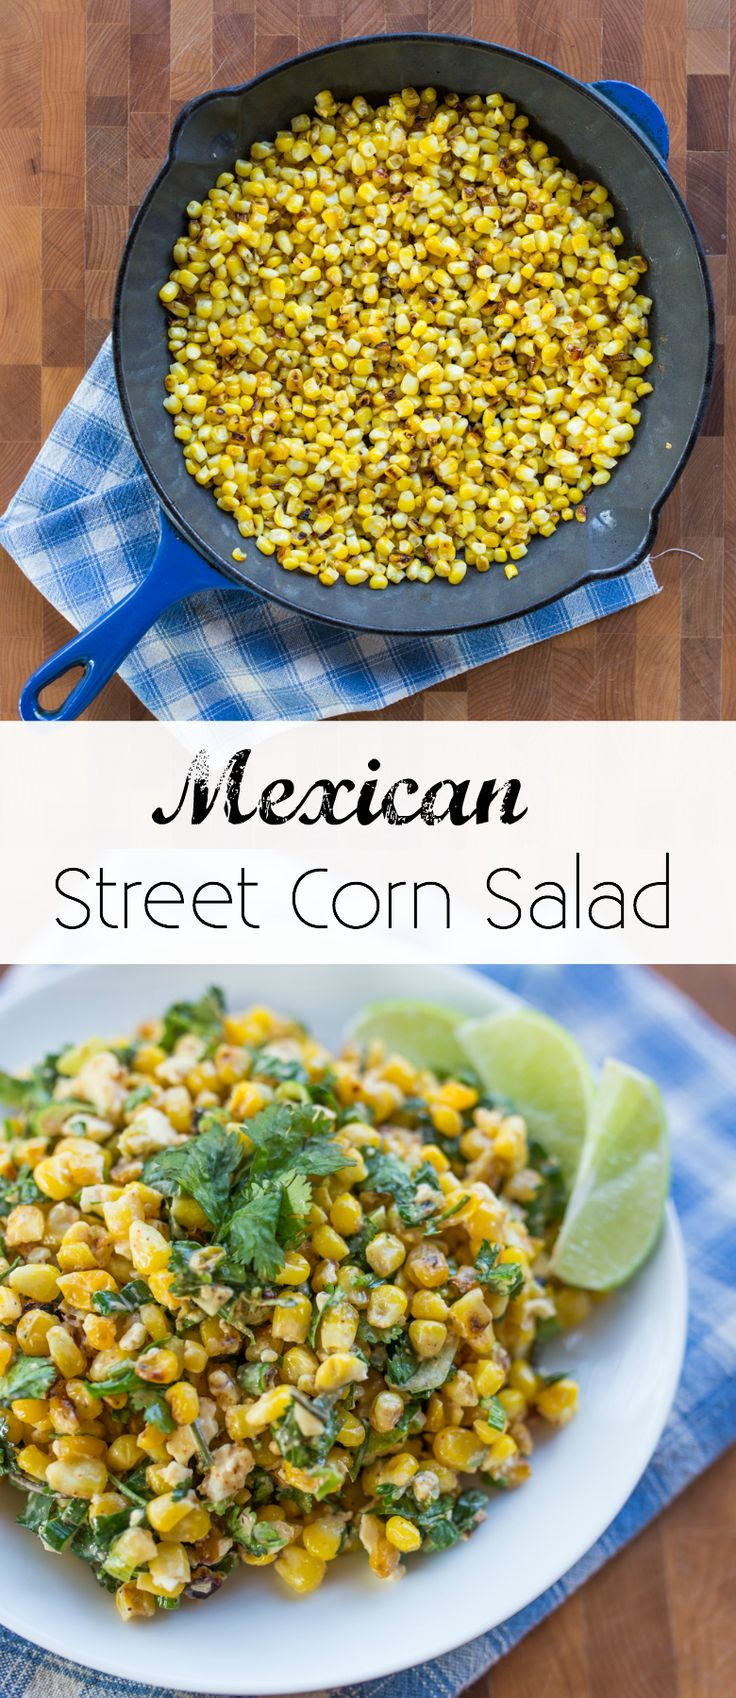 Mexican Street Corn Salad - Learn how to get a perfect char using frozen corn and a cast iron skillet. It's like summer in a bowl!